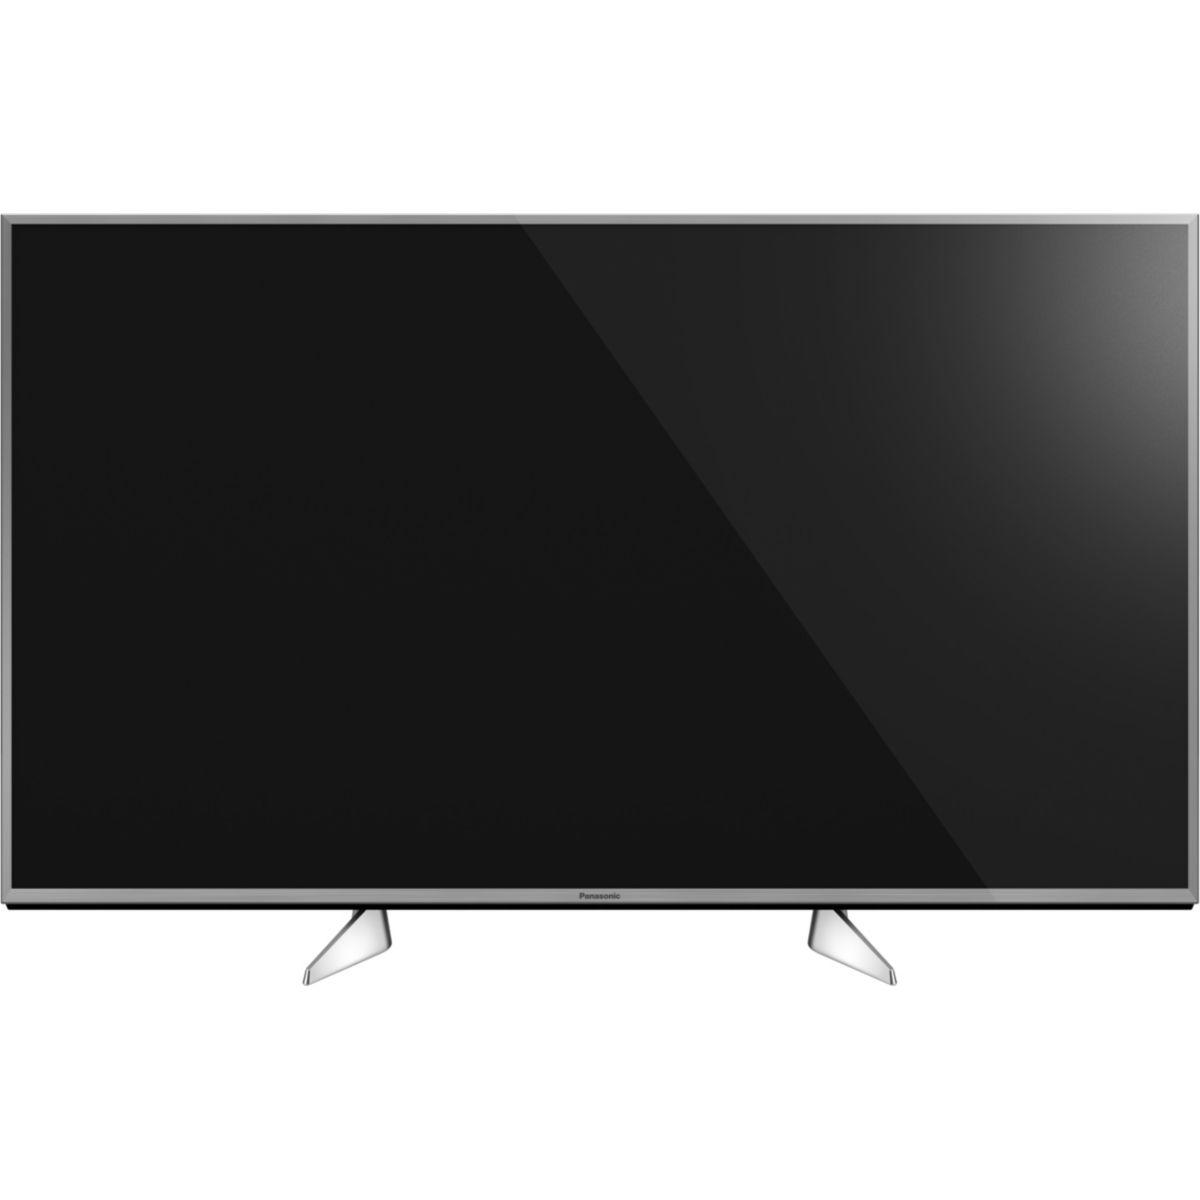 Tv panasonic tx-55ex610e (photo)